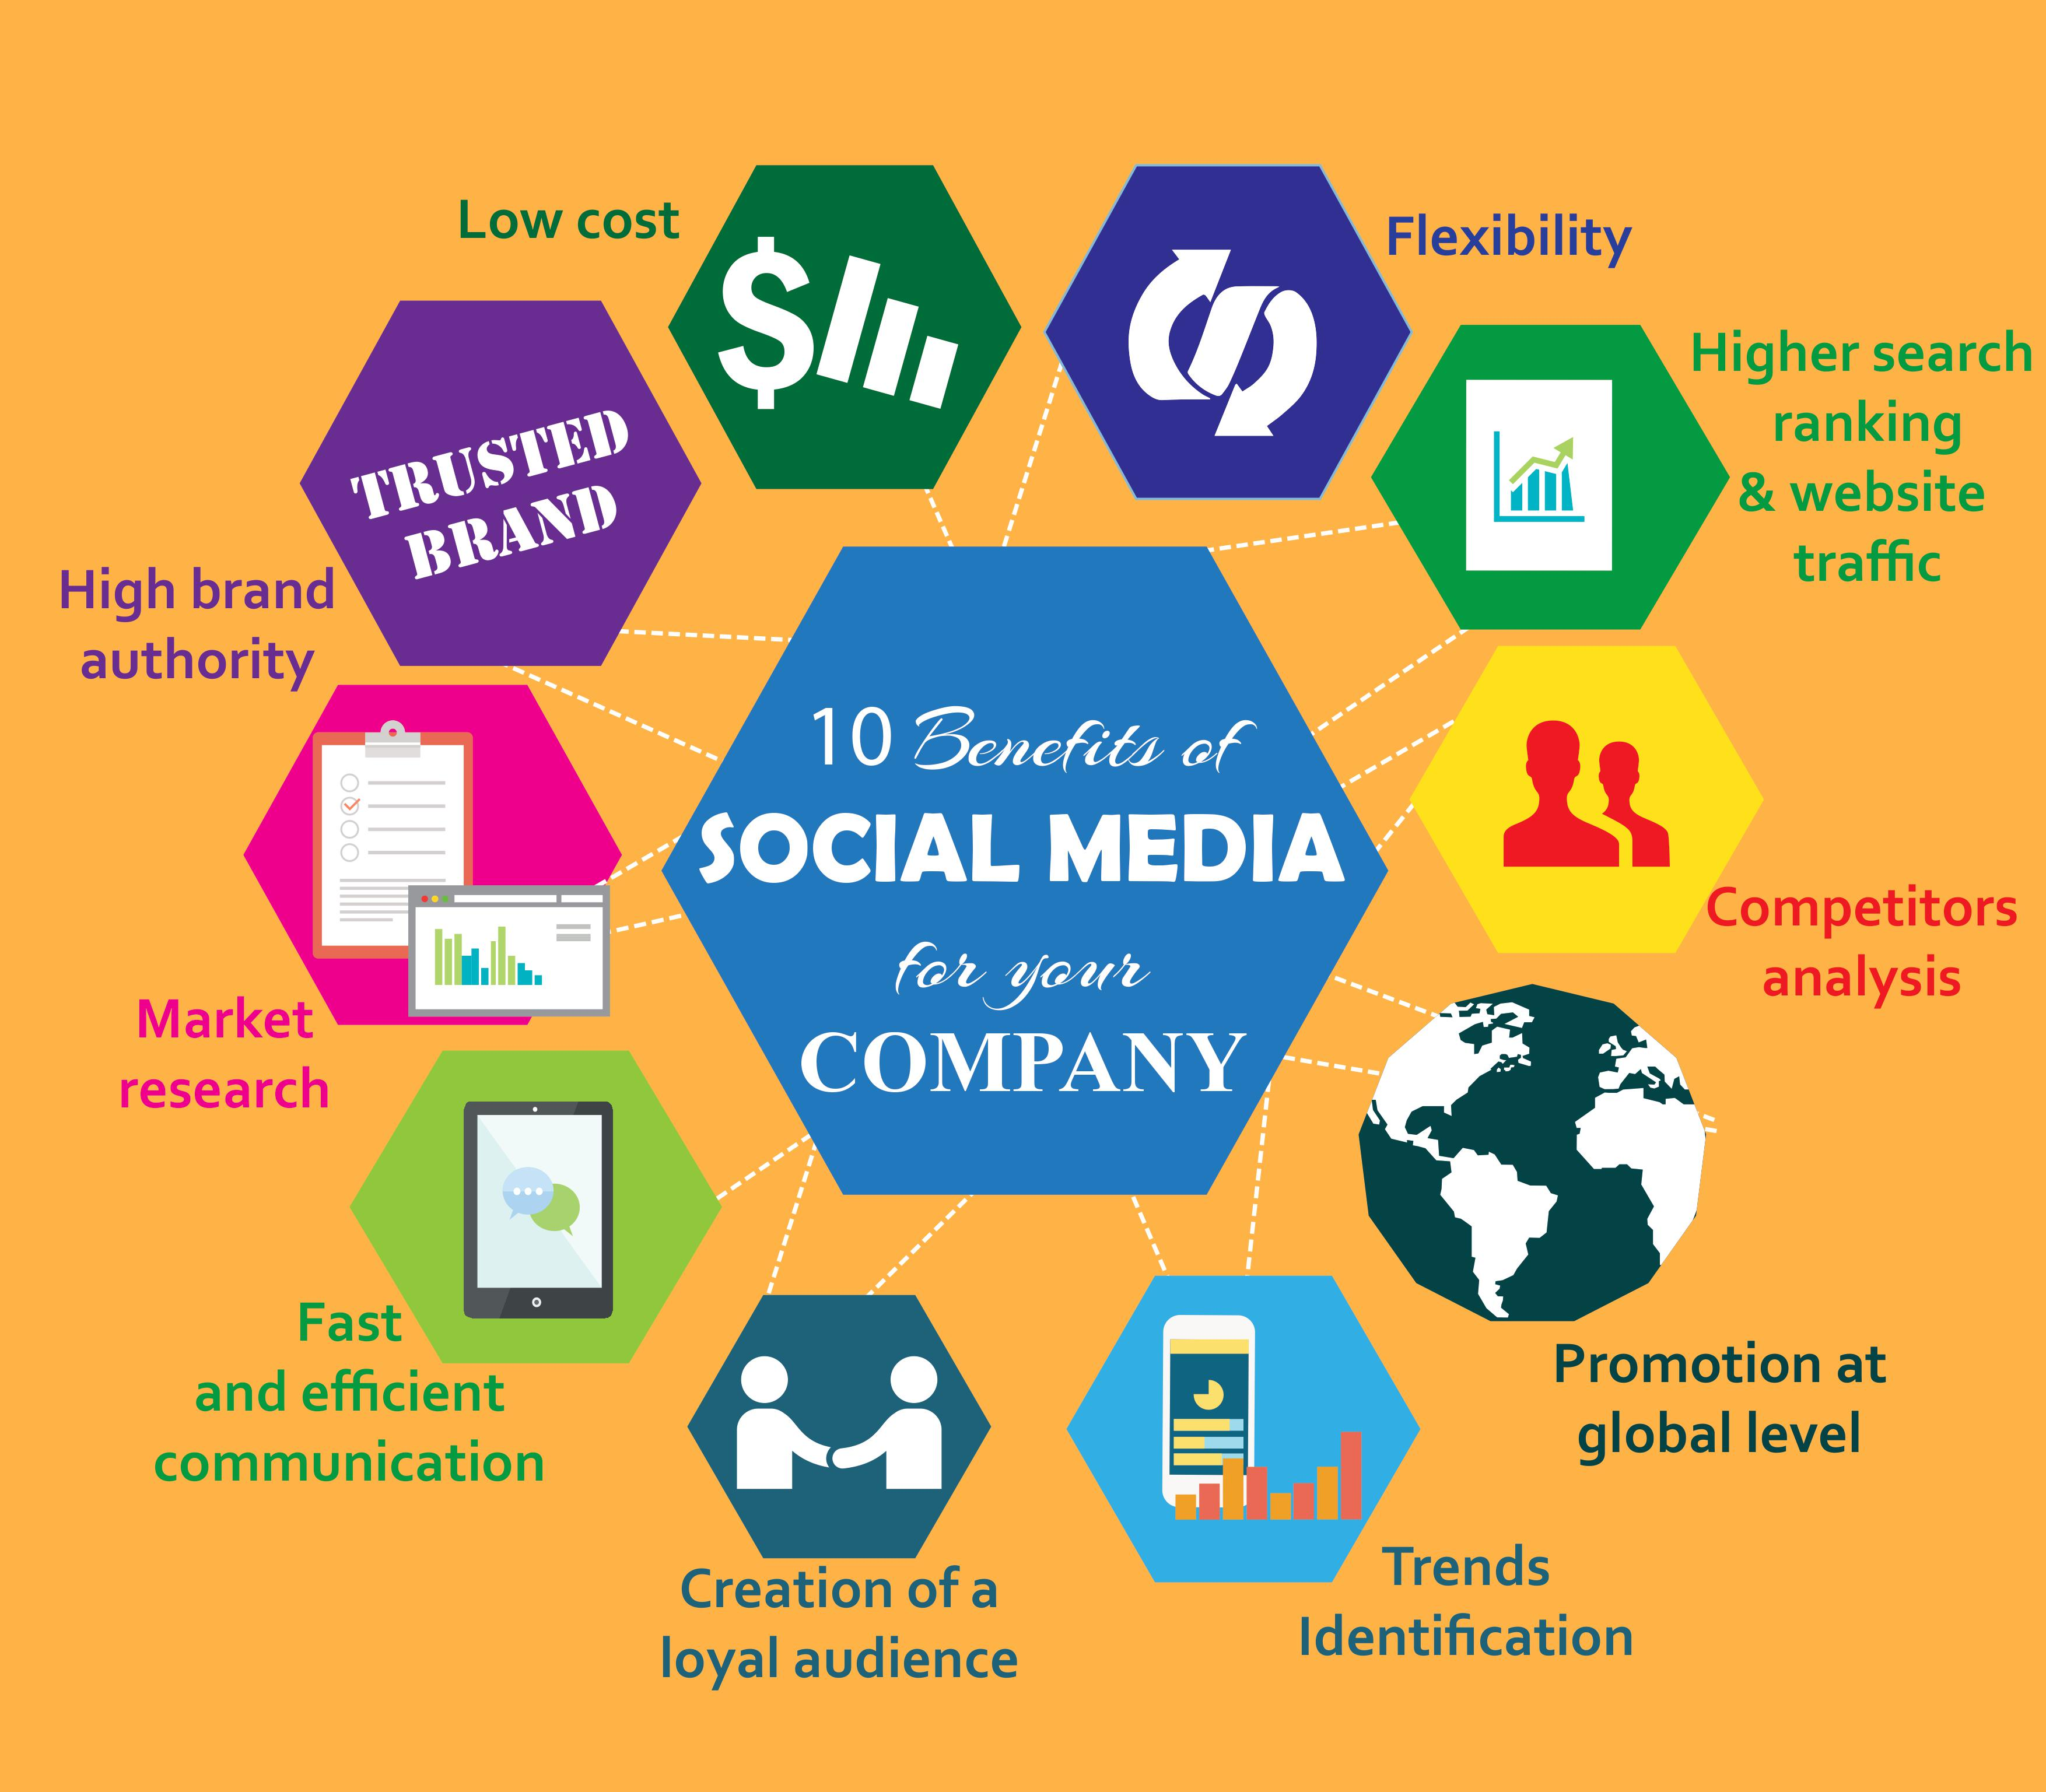 Benefits of social media use